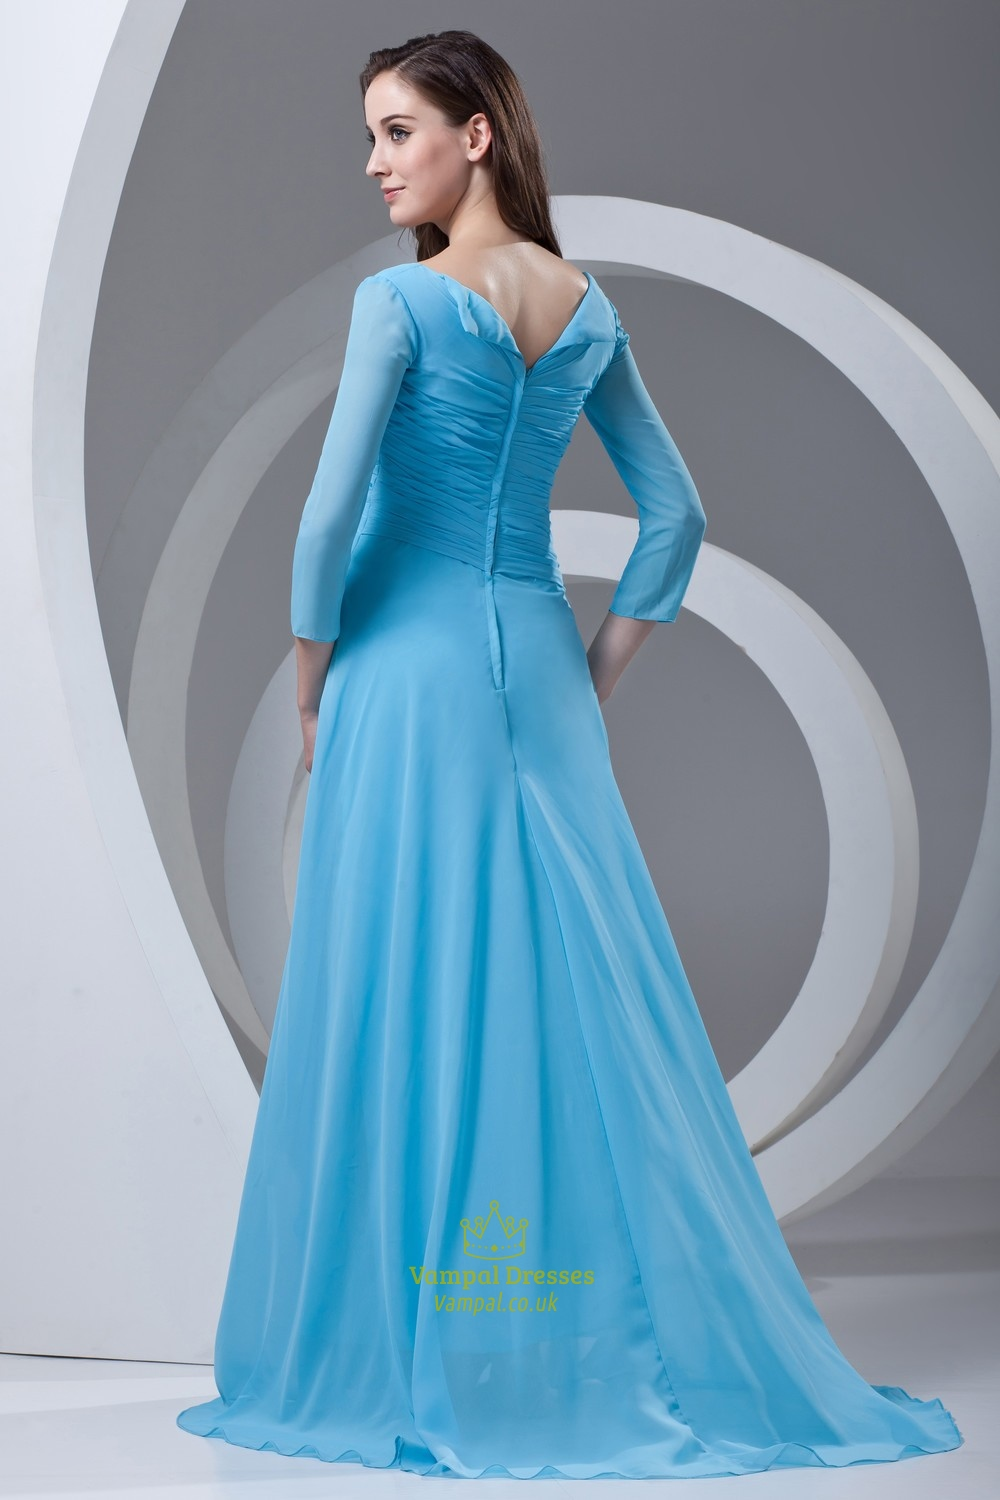 The Mother of Bride Dresses Floor Length Sky Blue – fashion dresses